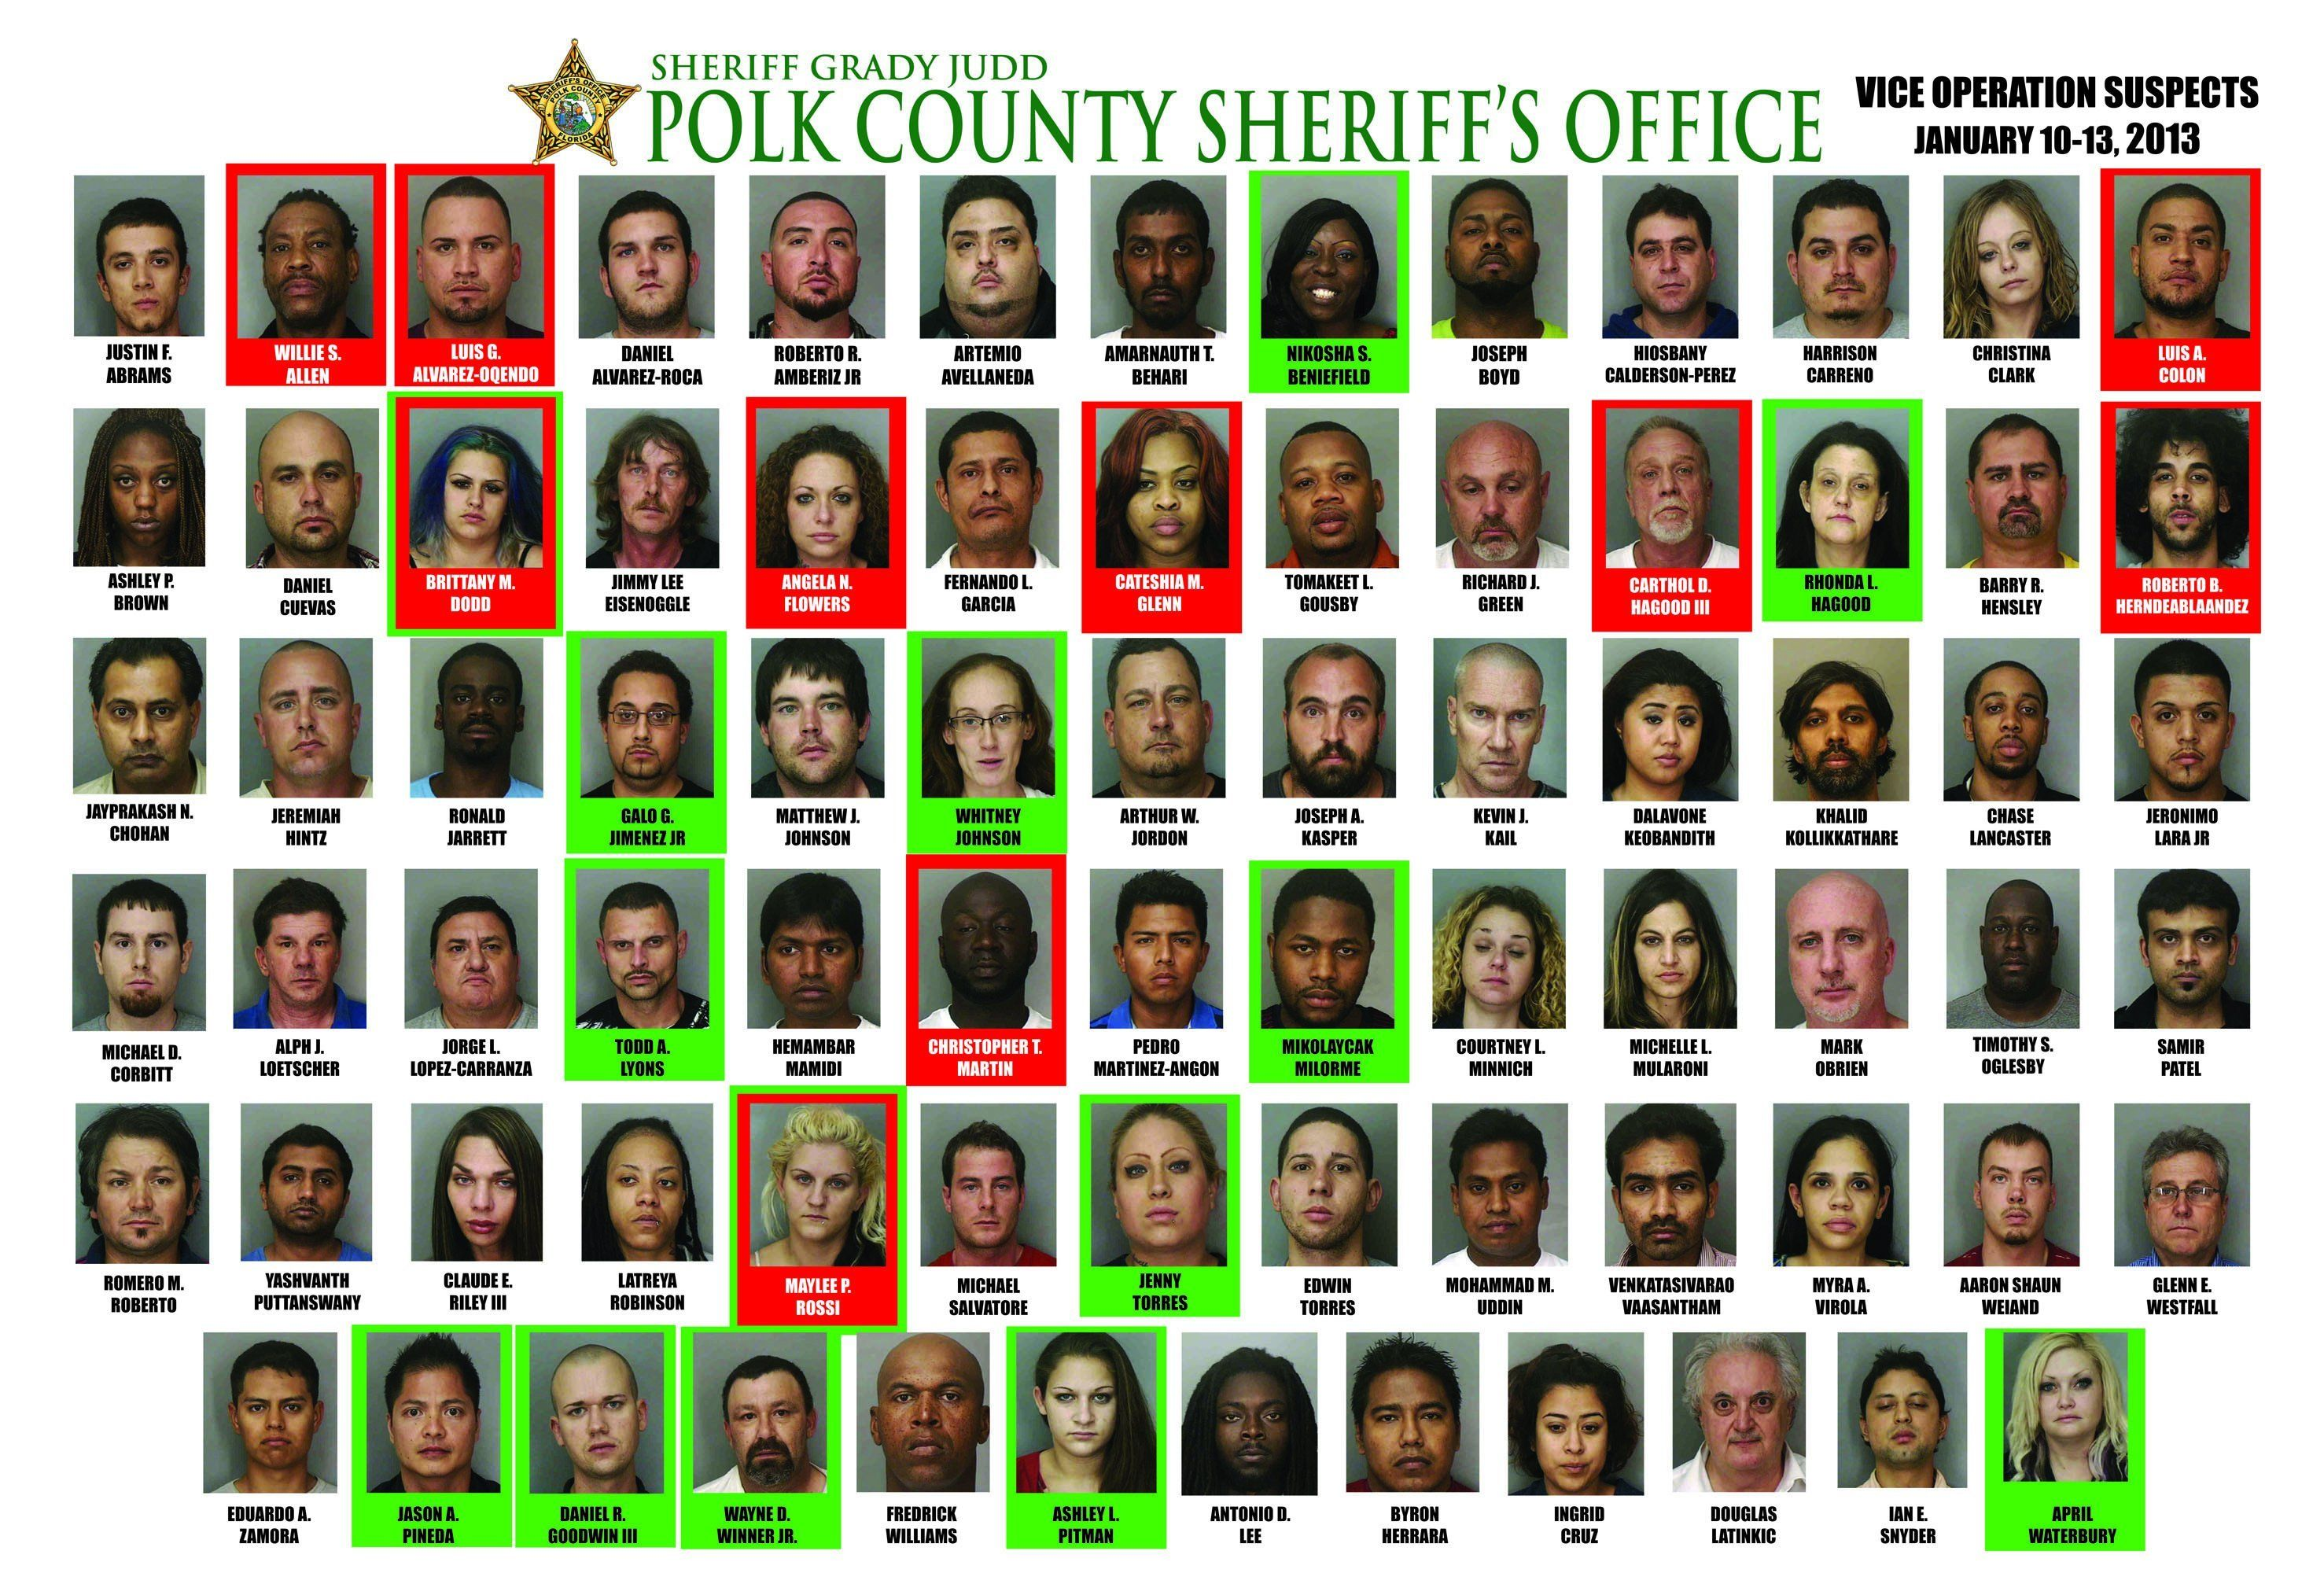 78 Arrests In 4 Day Prostitution Sting By Polk County